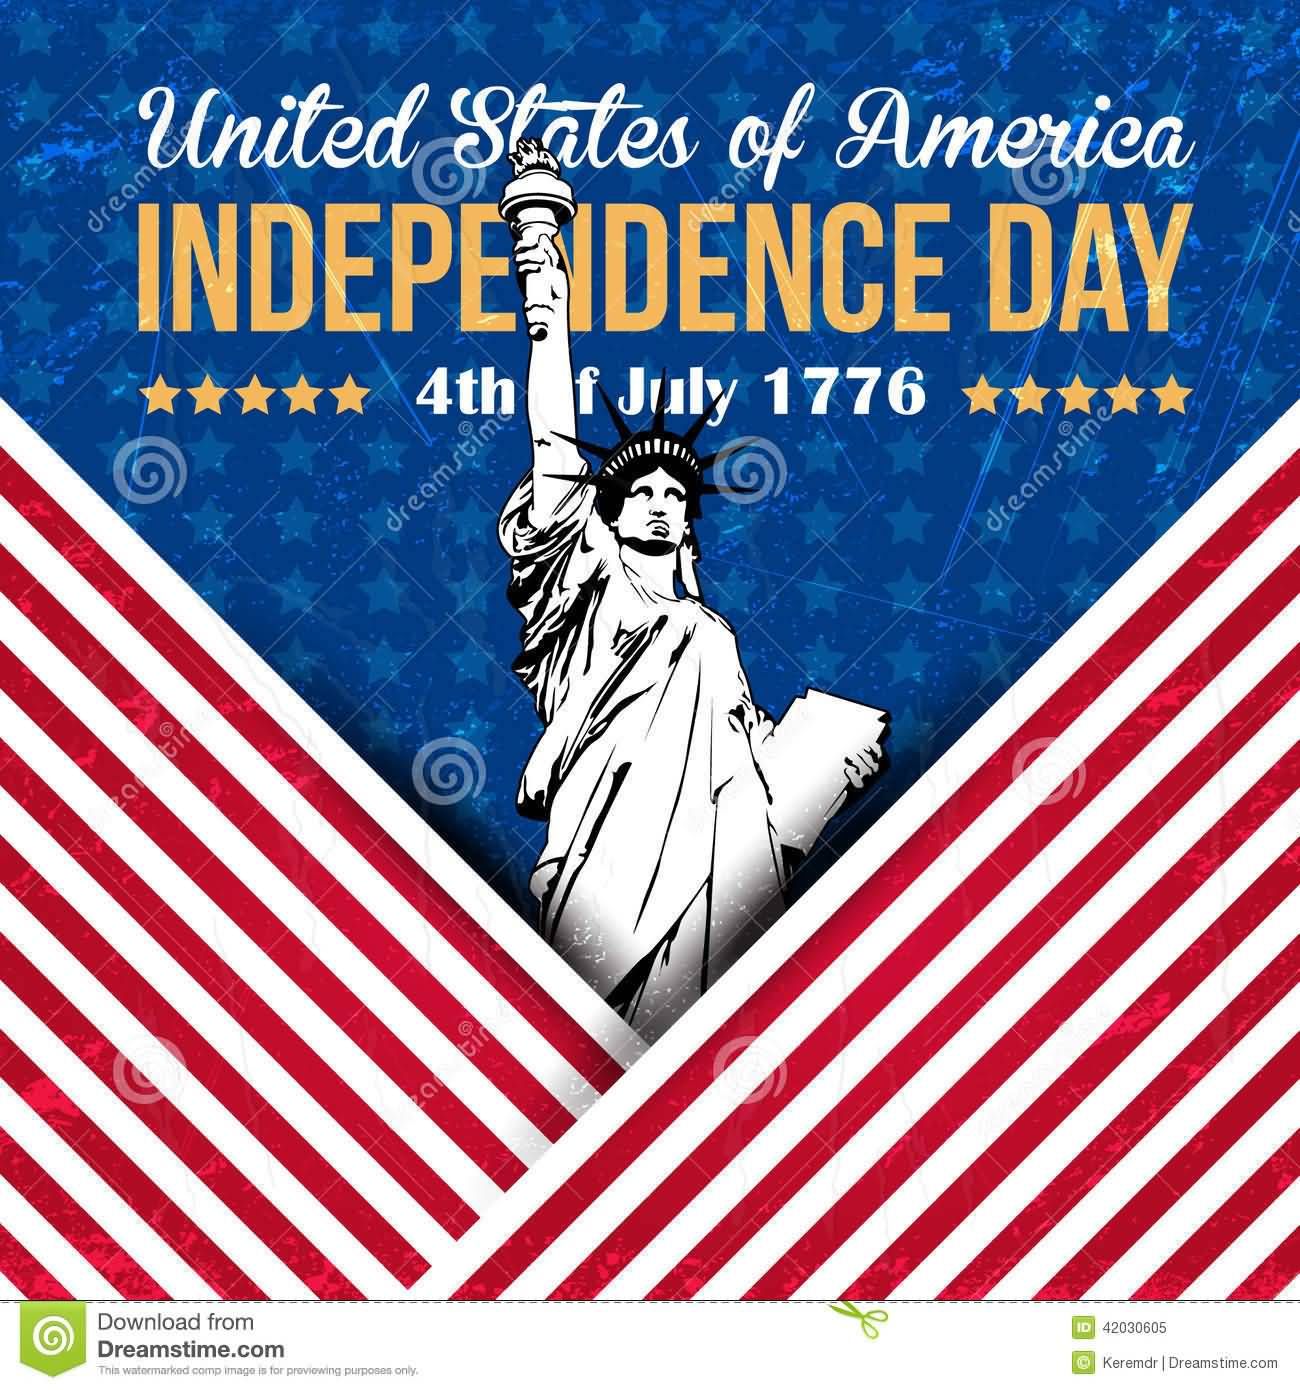 United States Of America - Happy Independence Day